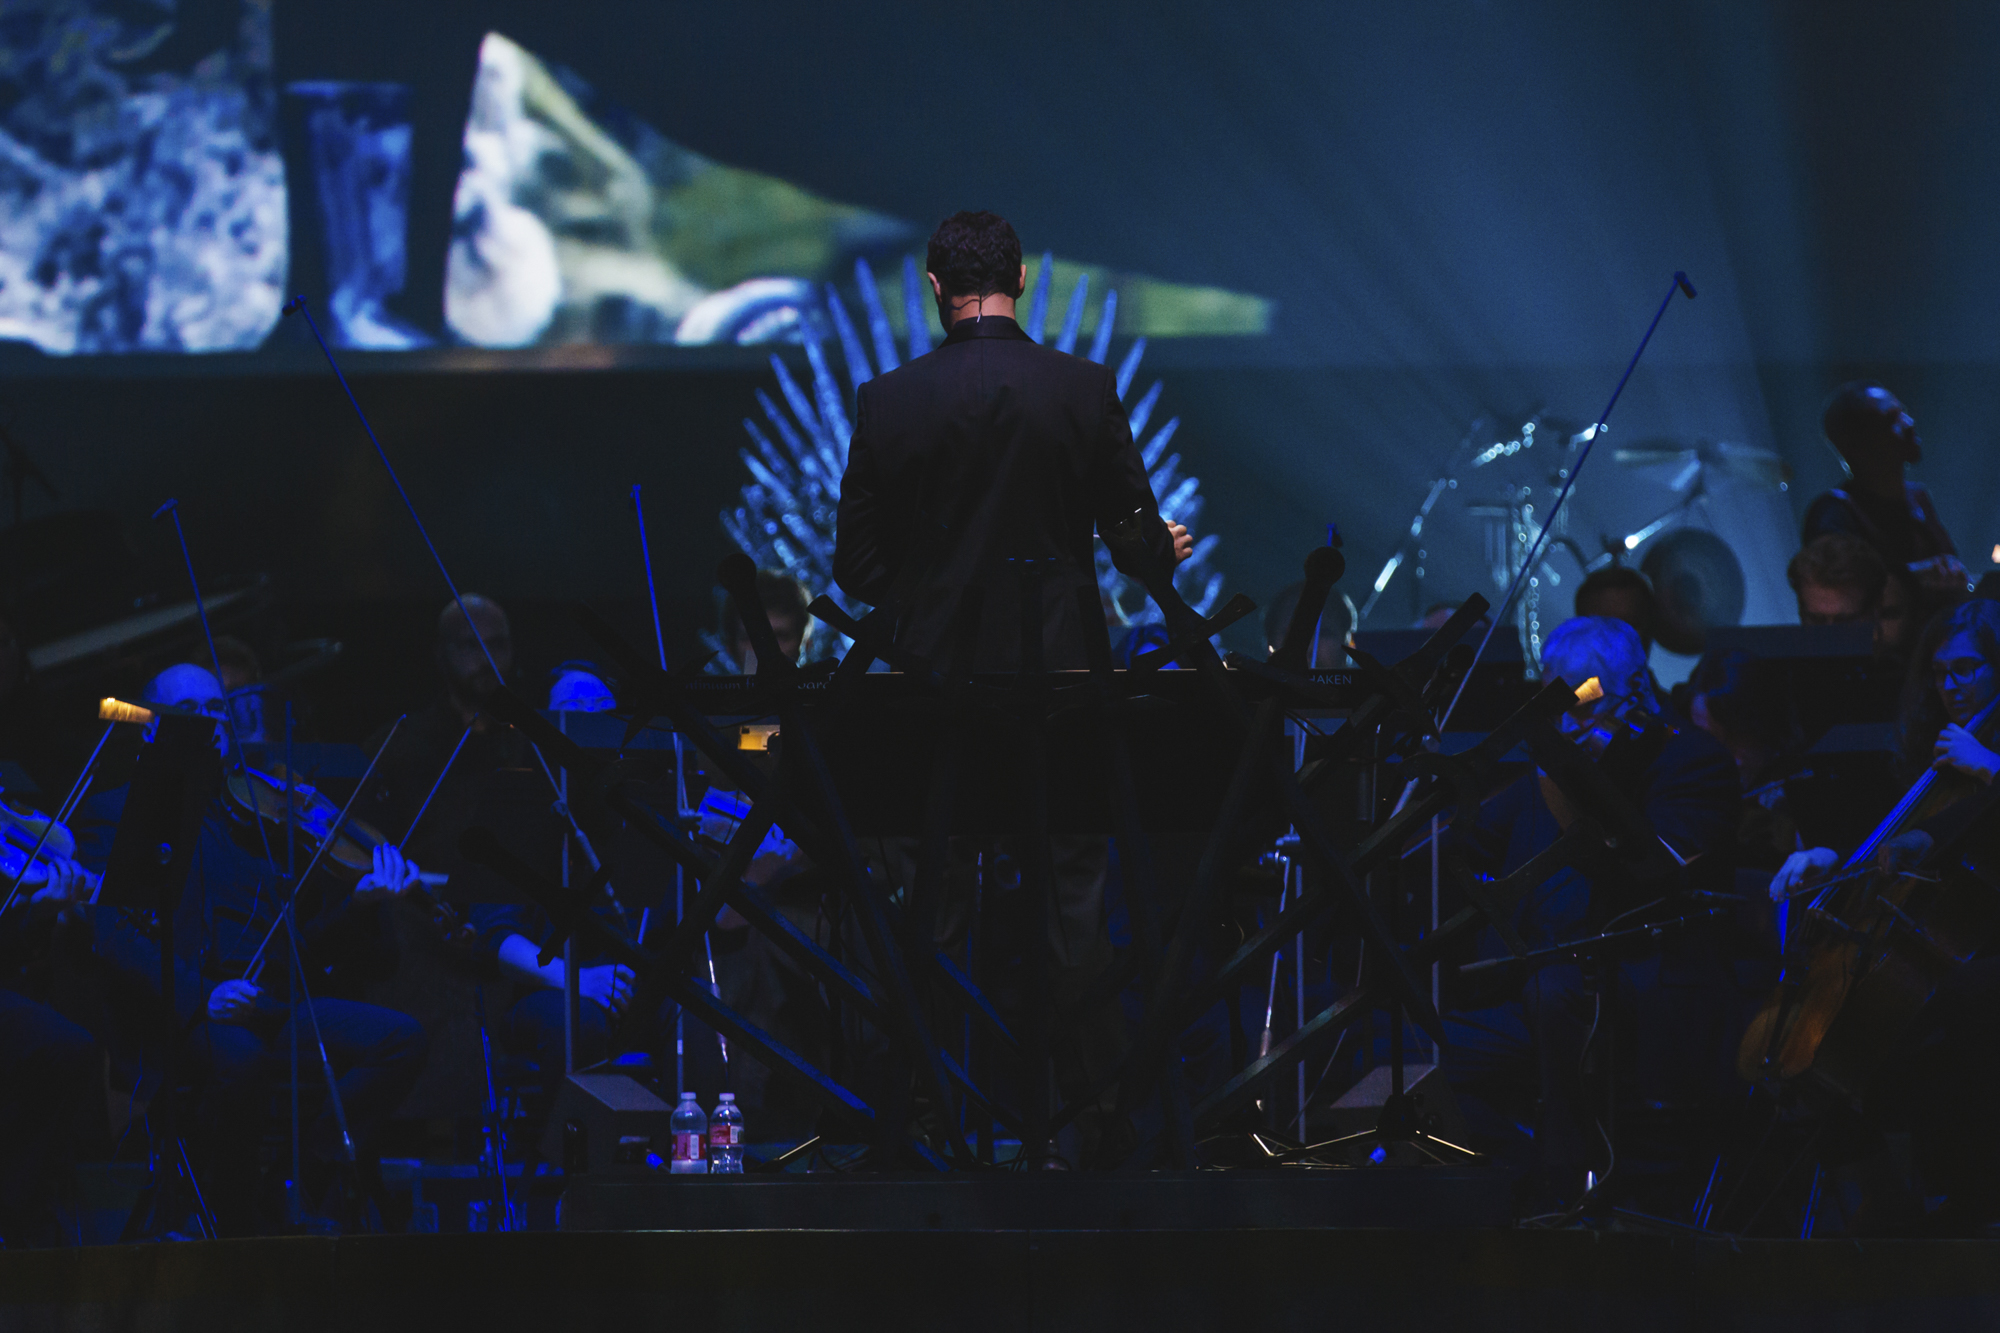 <p>Winter is literally coming, but it was nothing but HOT in KeyArena tonight when the Game of Thrones Live Concert Experience came through town! The immersive and visual experience brought the Seven Kingdoms to life on a scale that's impossible to get through your TV. Composer Ramin Djawadi takes a full orchestra and choir through the score of the Emmy Award-winning show that so many are obsessed with. (Image: Sunita Martini / Seattle Refined)</p>